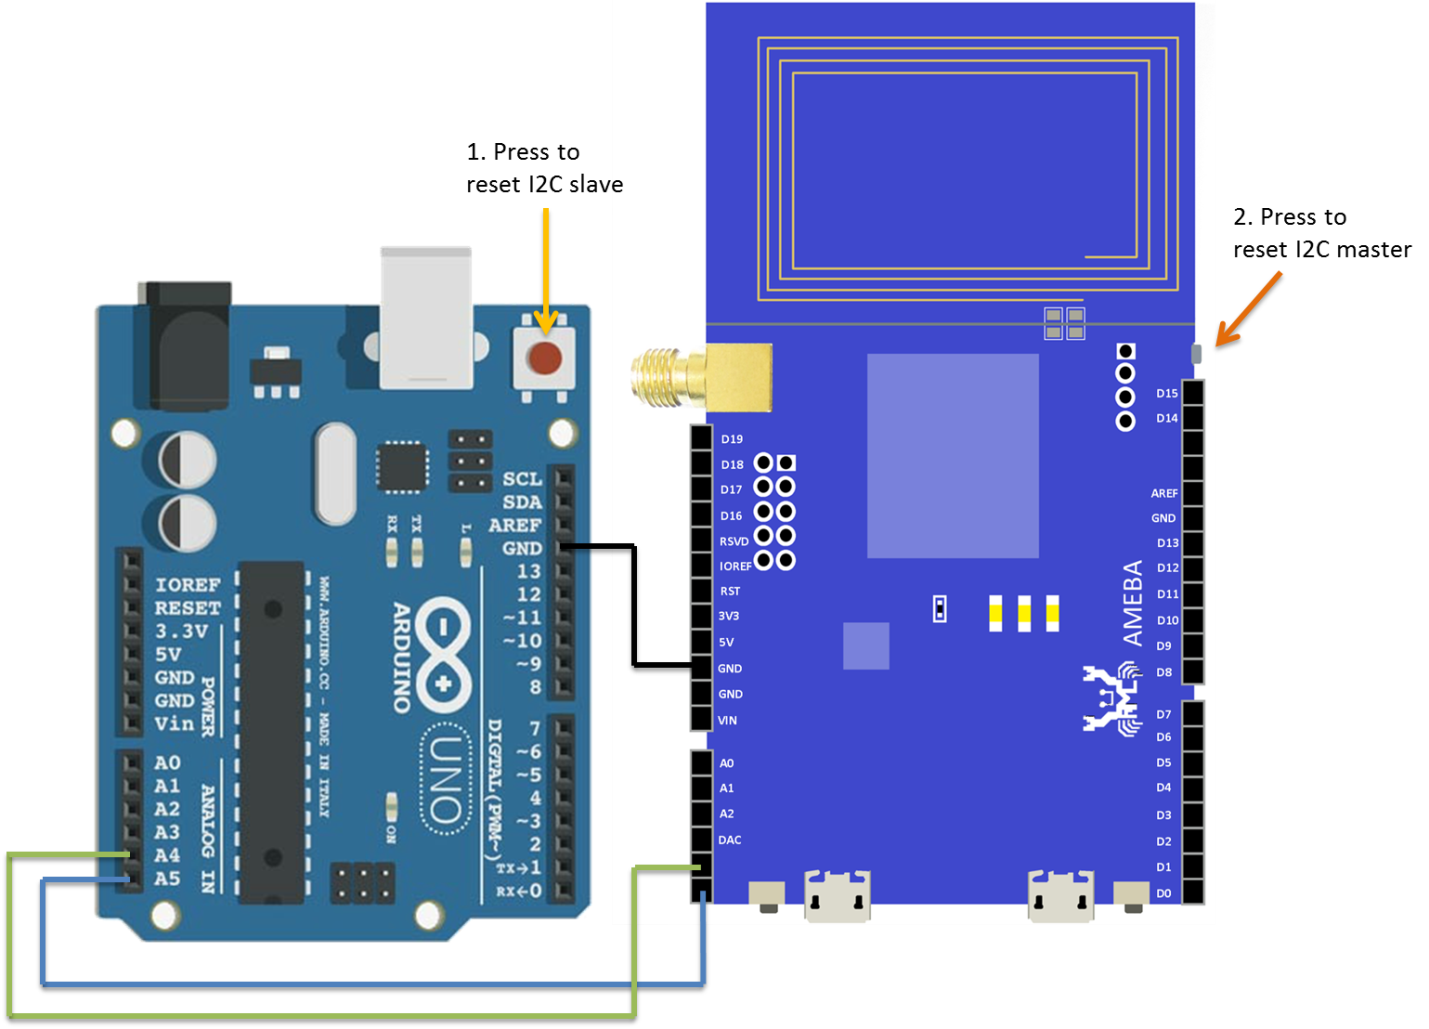 Ameba arduino rtl8195 rtl8710 i2c communicate with arduino 4 5 below is the rtl8710 wiring diagram asfbconference2016 Image collections